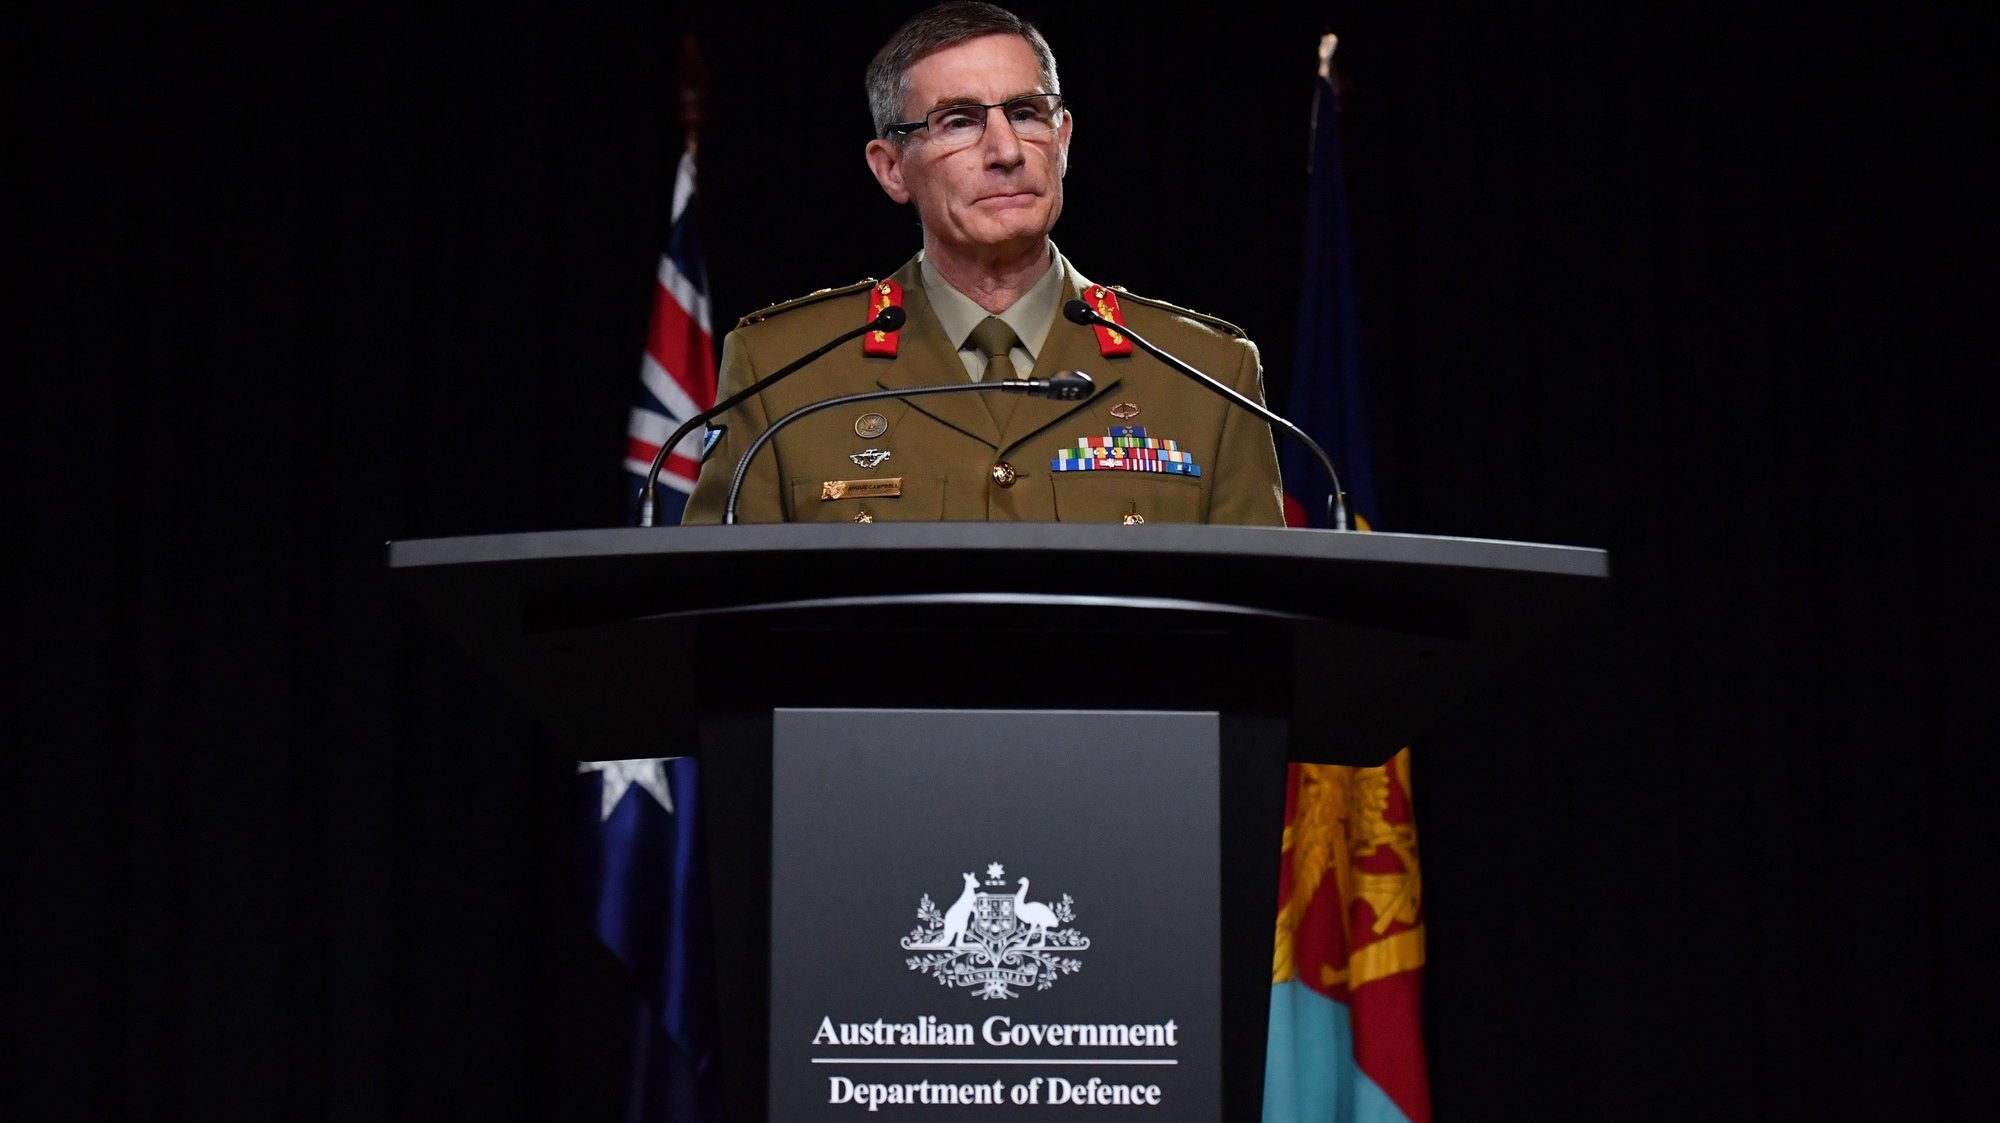 epa08828545 Chief of the Australian Defence Force (ADF) General Angus Campbell delivers the findings from the Inspector-General of the Australian Defence Force Afghanistan Inquiry, in Canberra, Australia, 19 November 2020. A landmark report has shed light on alleged war crimes by Australian troops serving in Afghanistan.  EPA/MICK TASIKAS AUSTRALIA AND NEW ZEALAND OUT